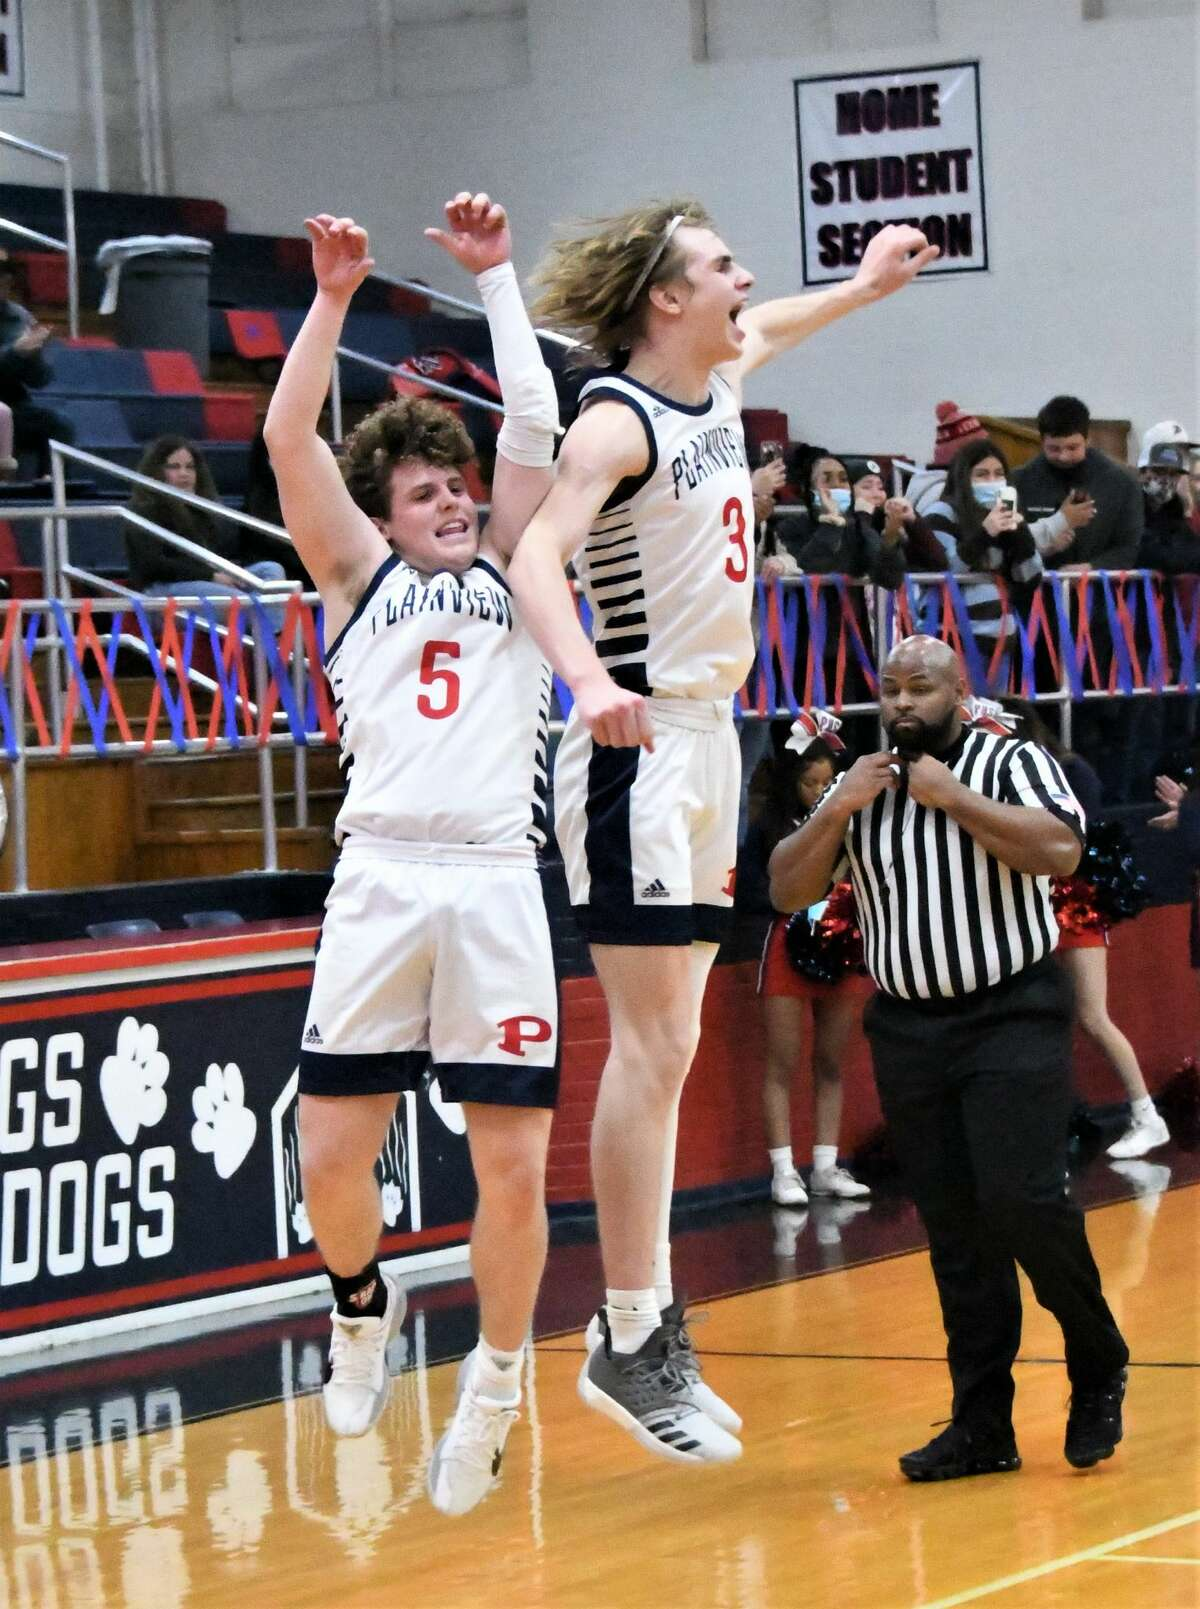 The Plainview boys basketball team secured its first playoff appearance since 2017 with an 80-64 win over Amarillo Palo Duro on Friday night in the Dog House.